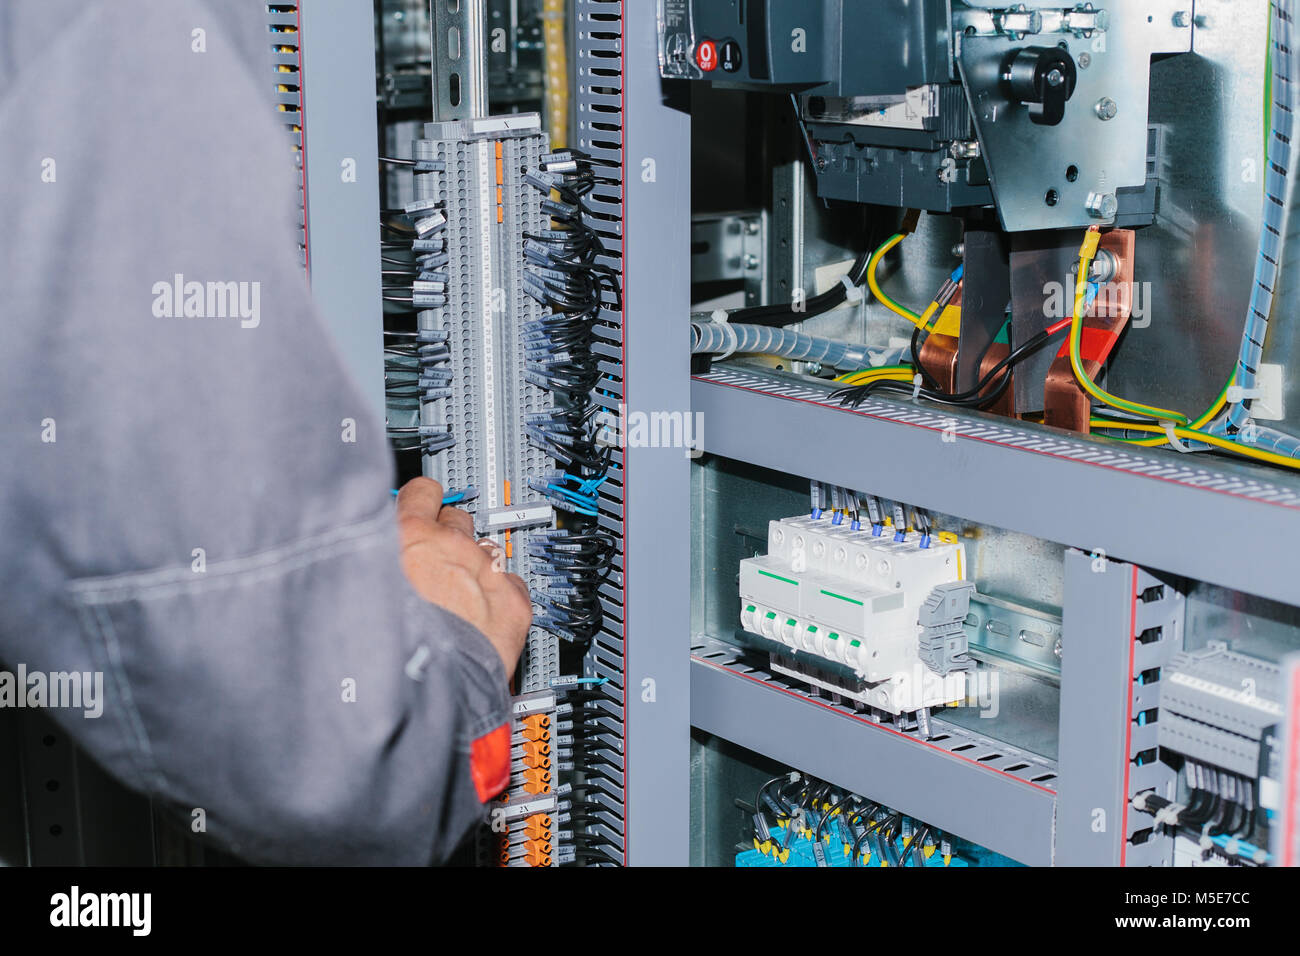 Low Voltage Stock Photos Images Alamy Home Wiring Electrician Specialist Checking Cabinet Equipment Image